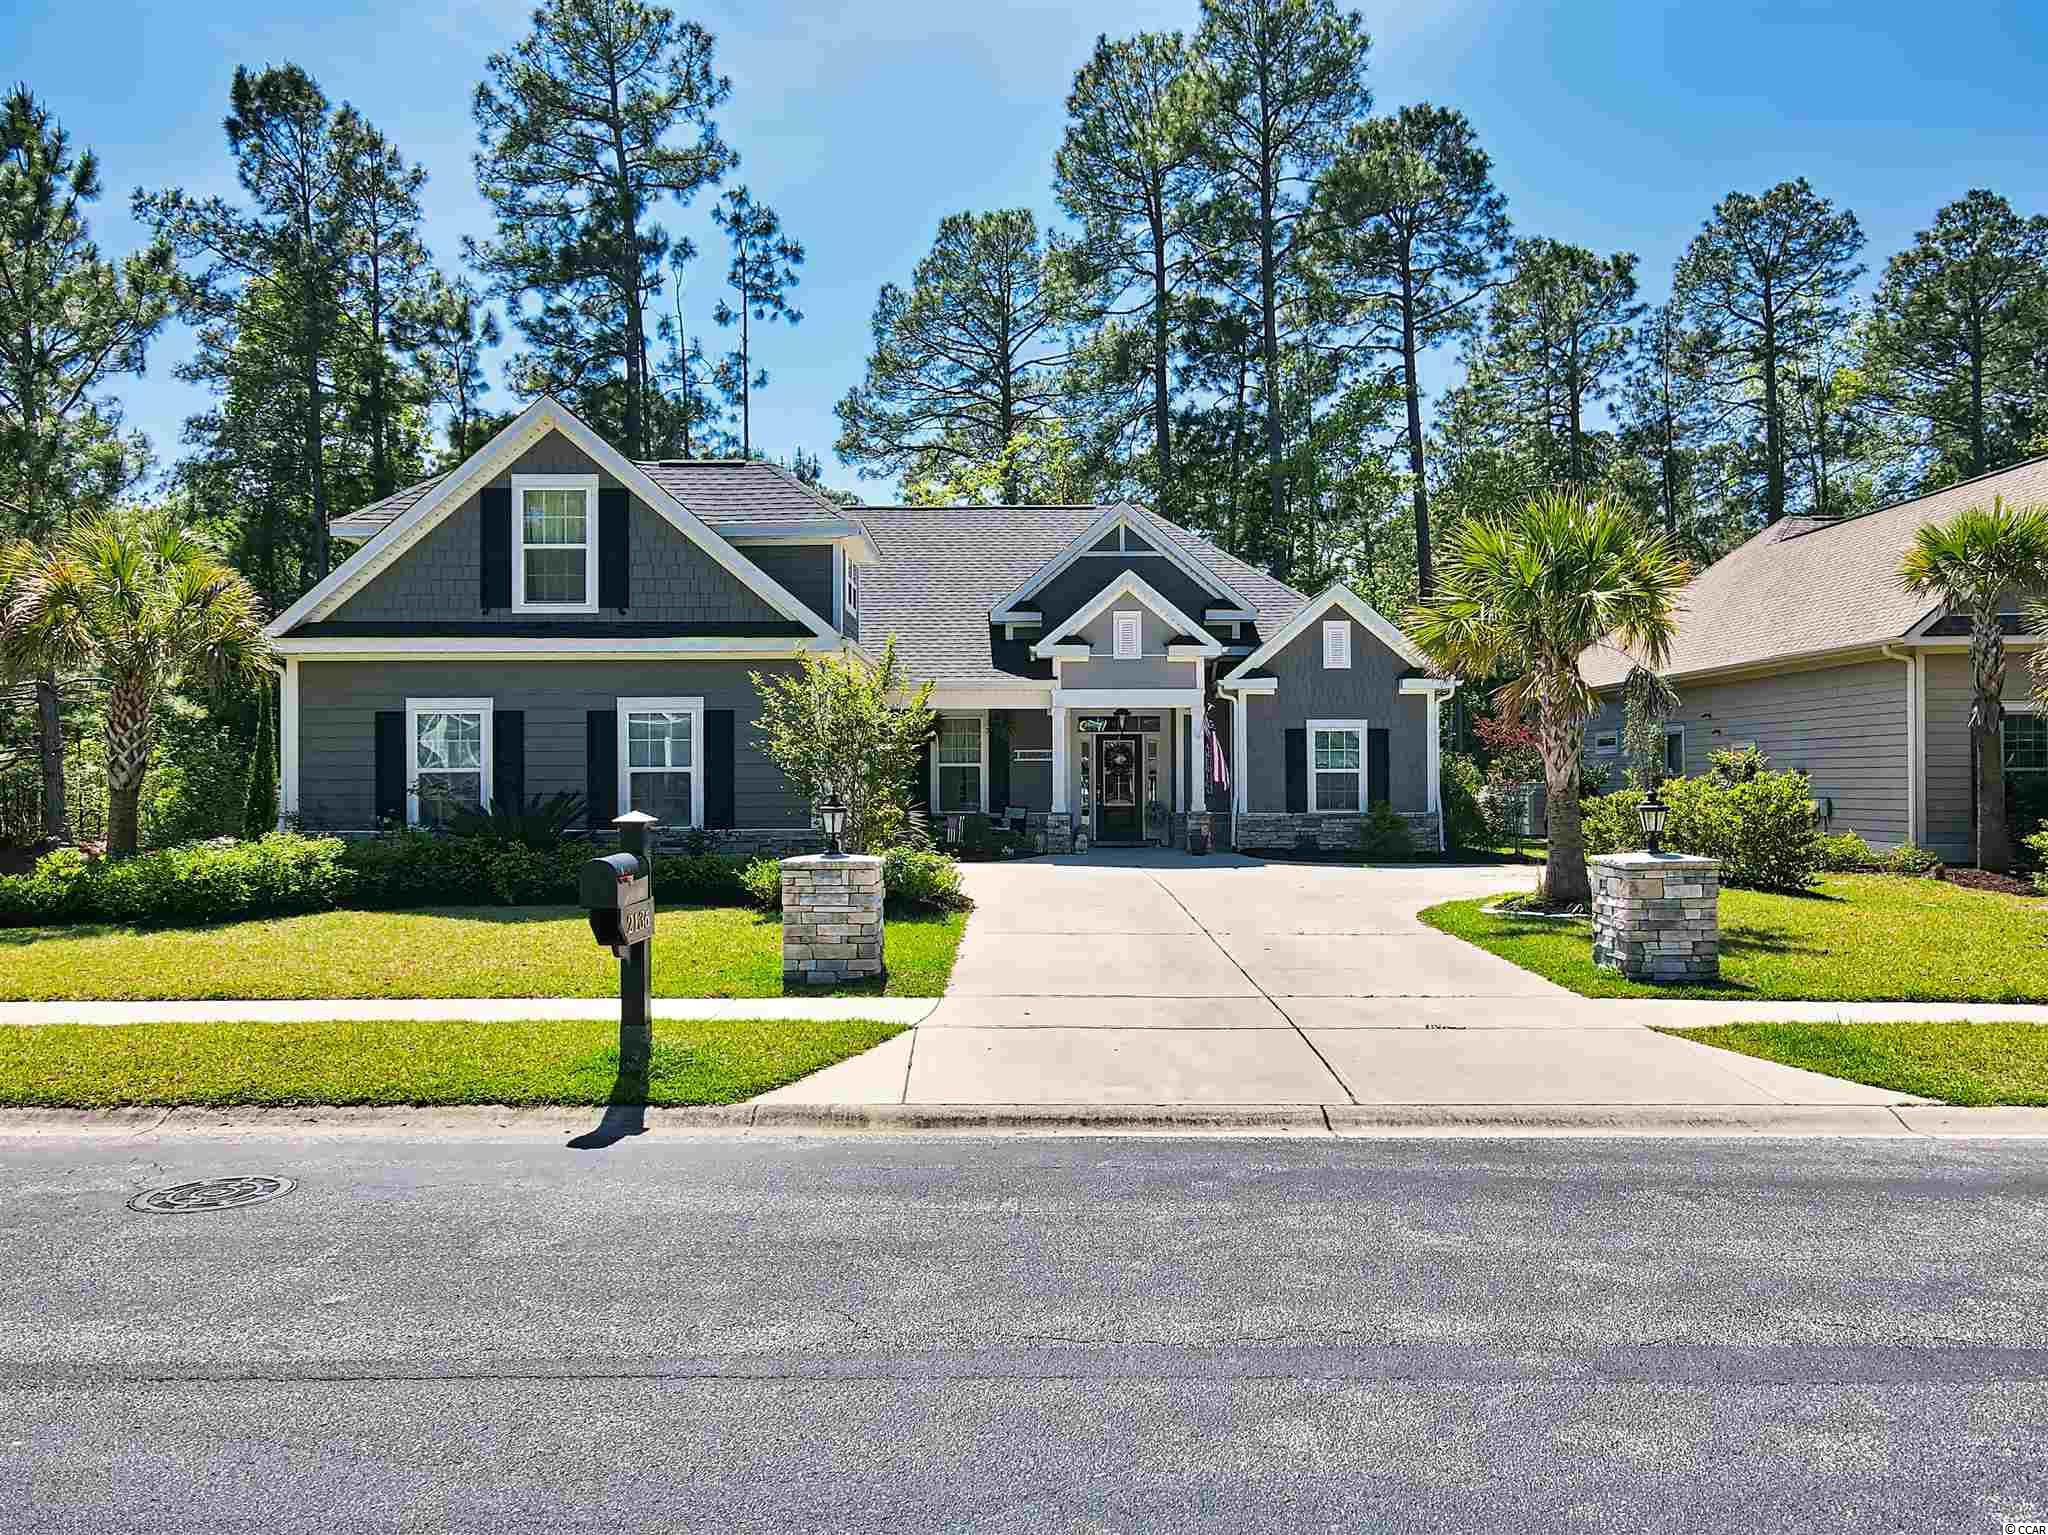 Looking for a recently built custom home in Cypress River Plantation?  Look no further.  This custom home offers 4 bedrooms and 3.5 bathrooms.  There are numerous custom upgrades throughout the entire home such as: chair rail, wainscoting, tray ceilings, crown moulding,  granite counter tops with a gourmet kitchen etc.  As you enter the front door you will notice the wide open floorplan with a cultured stone fireplace.   You will notice the hardwood floors run throughout the first floor.  The great room is a huge space for entertaining.  The master bedroom has a double stack tray ceiling with crown moulding.  The master bathroom has a walk in shower that has custom stone tile from floor to ceiling.  Inside the master suite closet you will find custom built closet organizers.  On the other side of the house there are two spare bedrooms with a full size bathroom between them. There is a jetted tub complete with tile shower in the spare bathroom.  There is a huge bonus space that is 24x12 over the garage that has a full bathroom, built in queen bed and plenty of space for an office or flex space.    The back of the house features a screened in porch that has a door at each end of the 27 foot long space.  Just outside the porch is a custom concrete pad with a half wall area that has cultured stone.  This private area is perfect for grilling and entertaining in the backyard.  A propane line was installed so you will never run out of gas while grilling.   The backyard has black aluminum fencing with custom cultured stone columns.  The yard also comes complete with  an irrigation system and fully landscapped freshly mulched beds.  The front yard has a side entry garage with an oversized concrete pad complete with two lighted columns and cultured stone as you enter.   Cypress River Plantation is one of the most sought after communities in the Grand Strand.  It is gated, with security and backs up to the beautiful Intercoastal Waterway.  Amenities include a huge swimming pool, fitness center, community center, tennis courts, basketball courts.  It also has an onsite private storage area for boats and RV's.  There is a boat ramp accessible for owners within the community with brand new floating docks.  This community is truely one of a kind.  Call today to schedule a showing before its gone!  Measurements are not guaranteed.  They are the buyer's responsibility to verify.